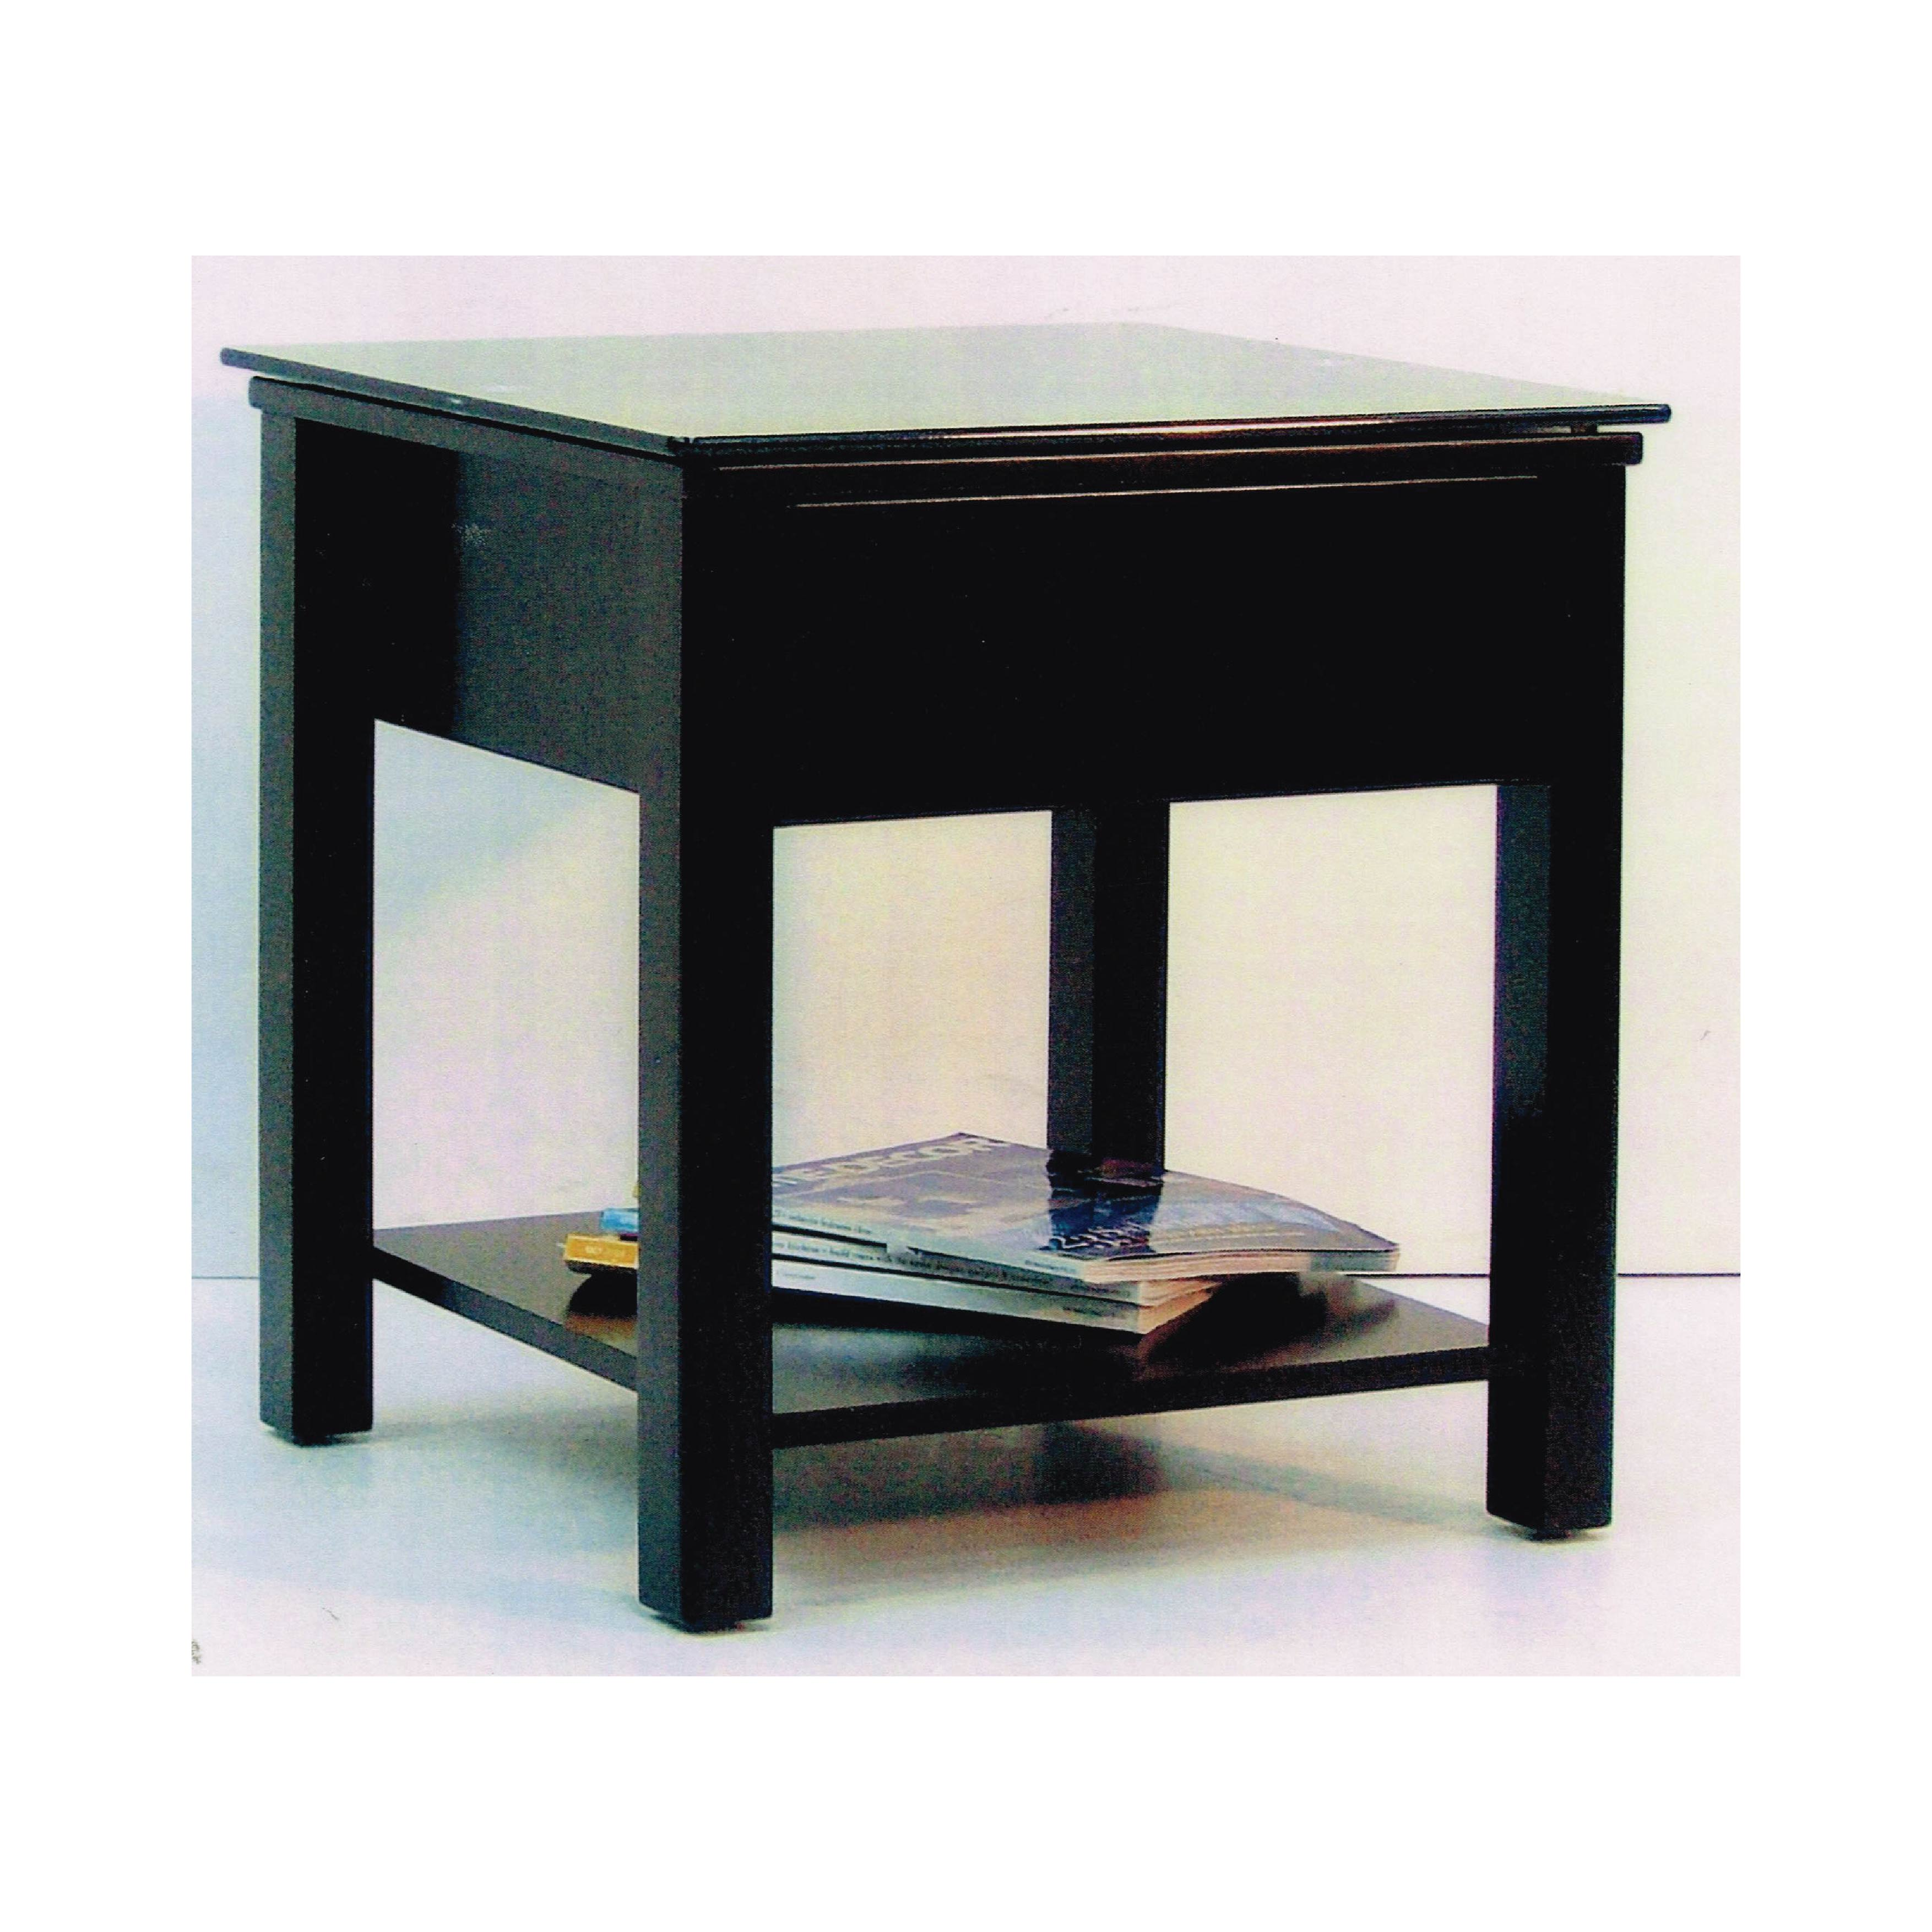 coffee table rounded corners corner triangle ikea tables nightstand classy end curved sofa accent wood with storage lamps mirrored side black bedside shaped furniture perth farm